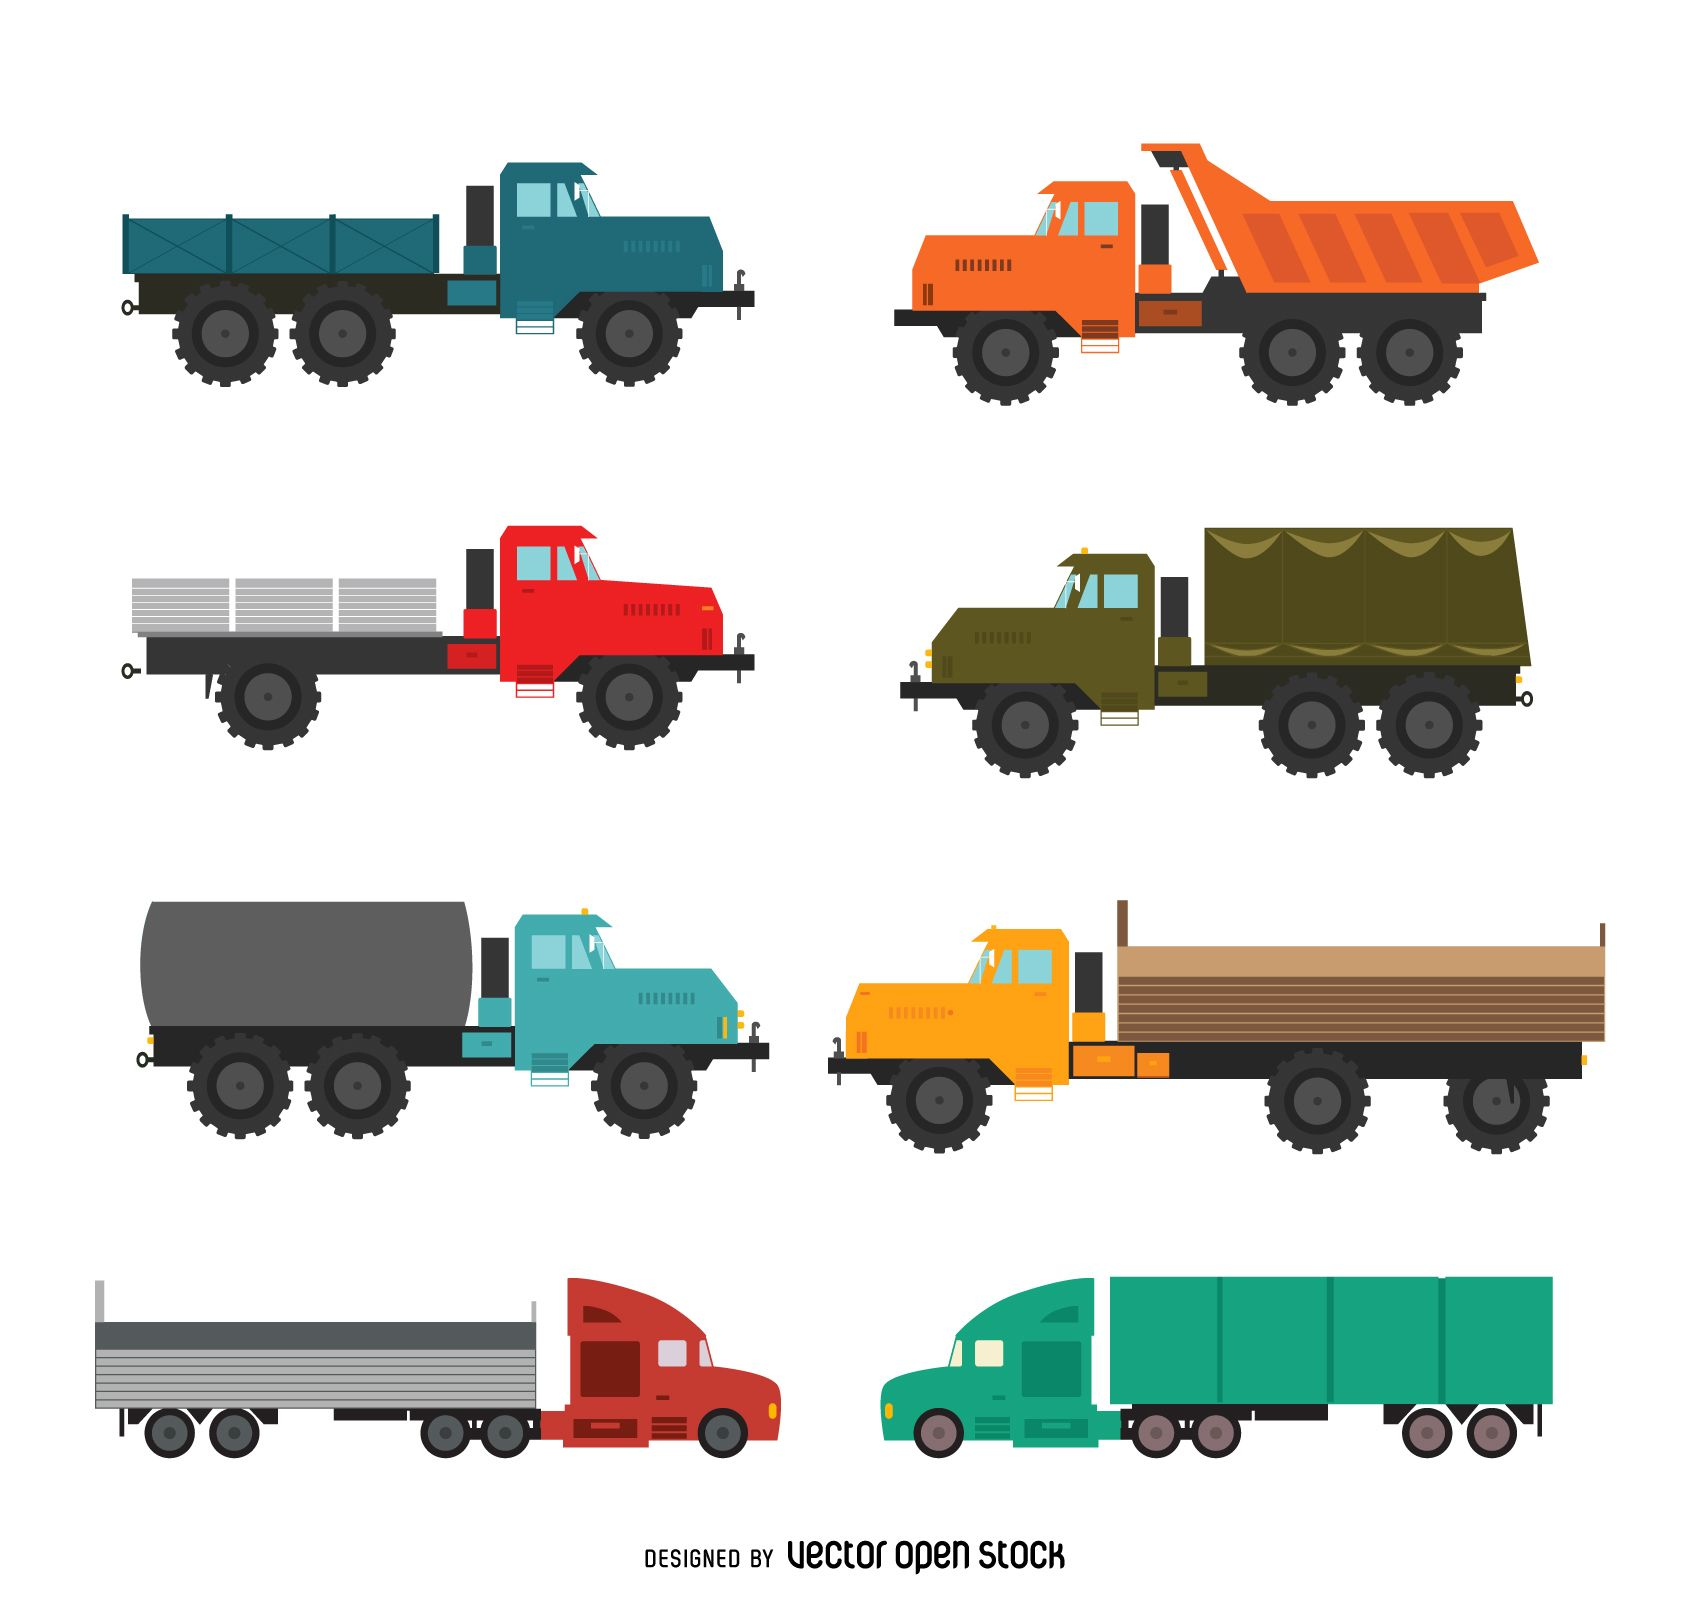 Set of flat isolated truck illustrations featuring different types of vehicles. Trucks were designed using realistic colors.